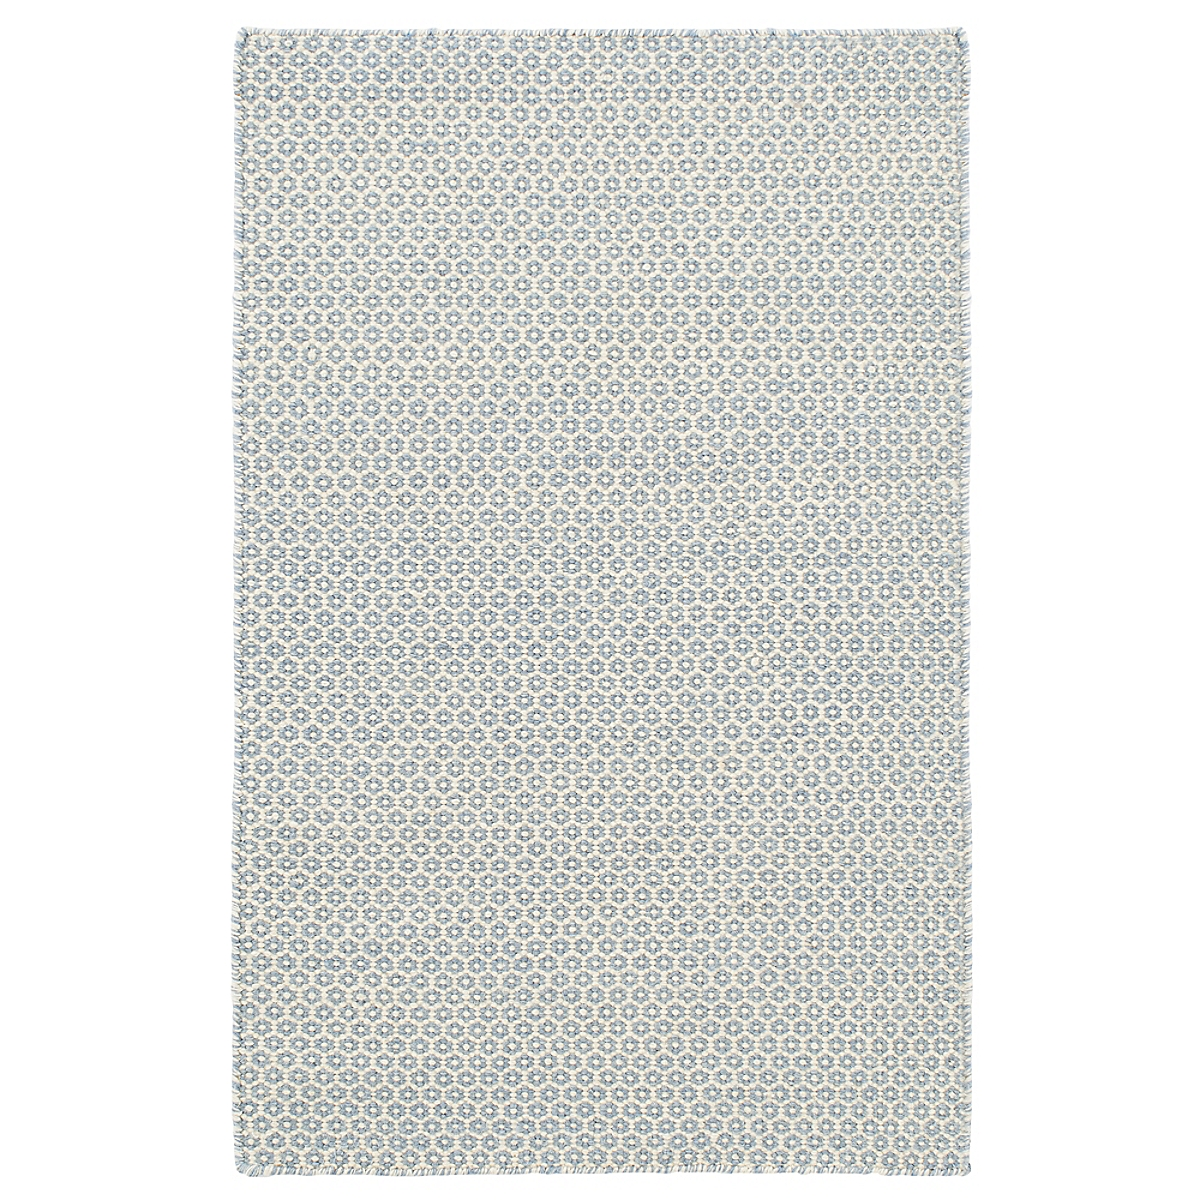 Honeycomb French Blue Ivory Wool Woven Rug